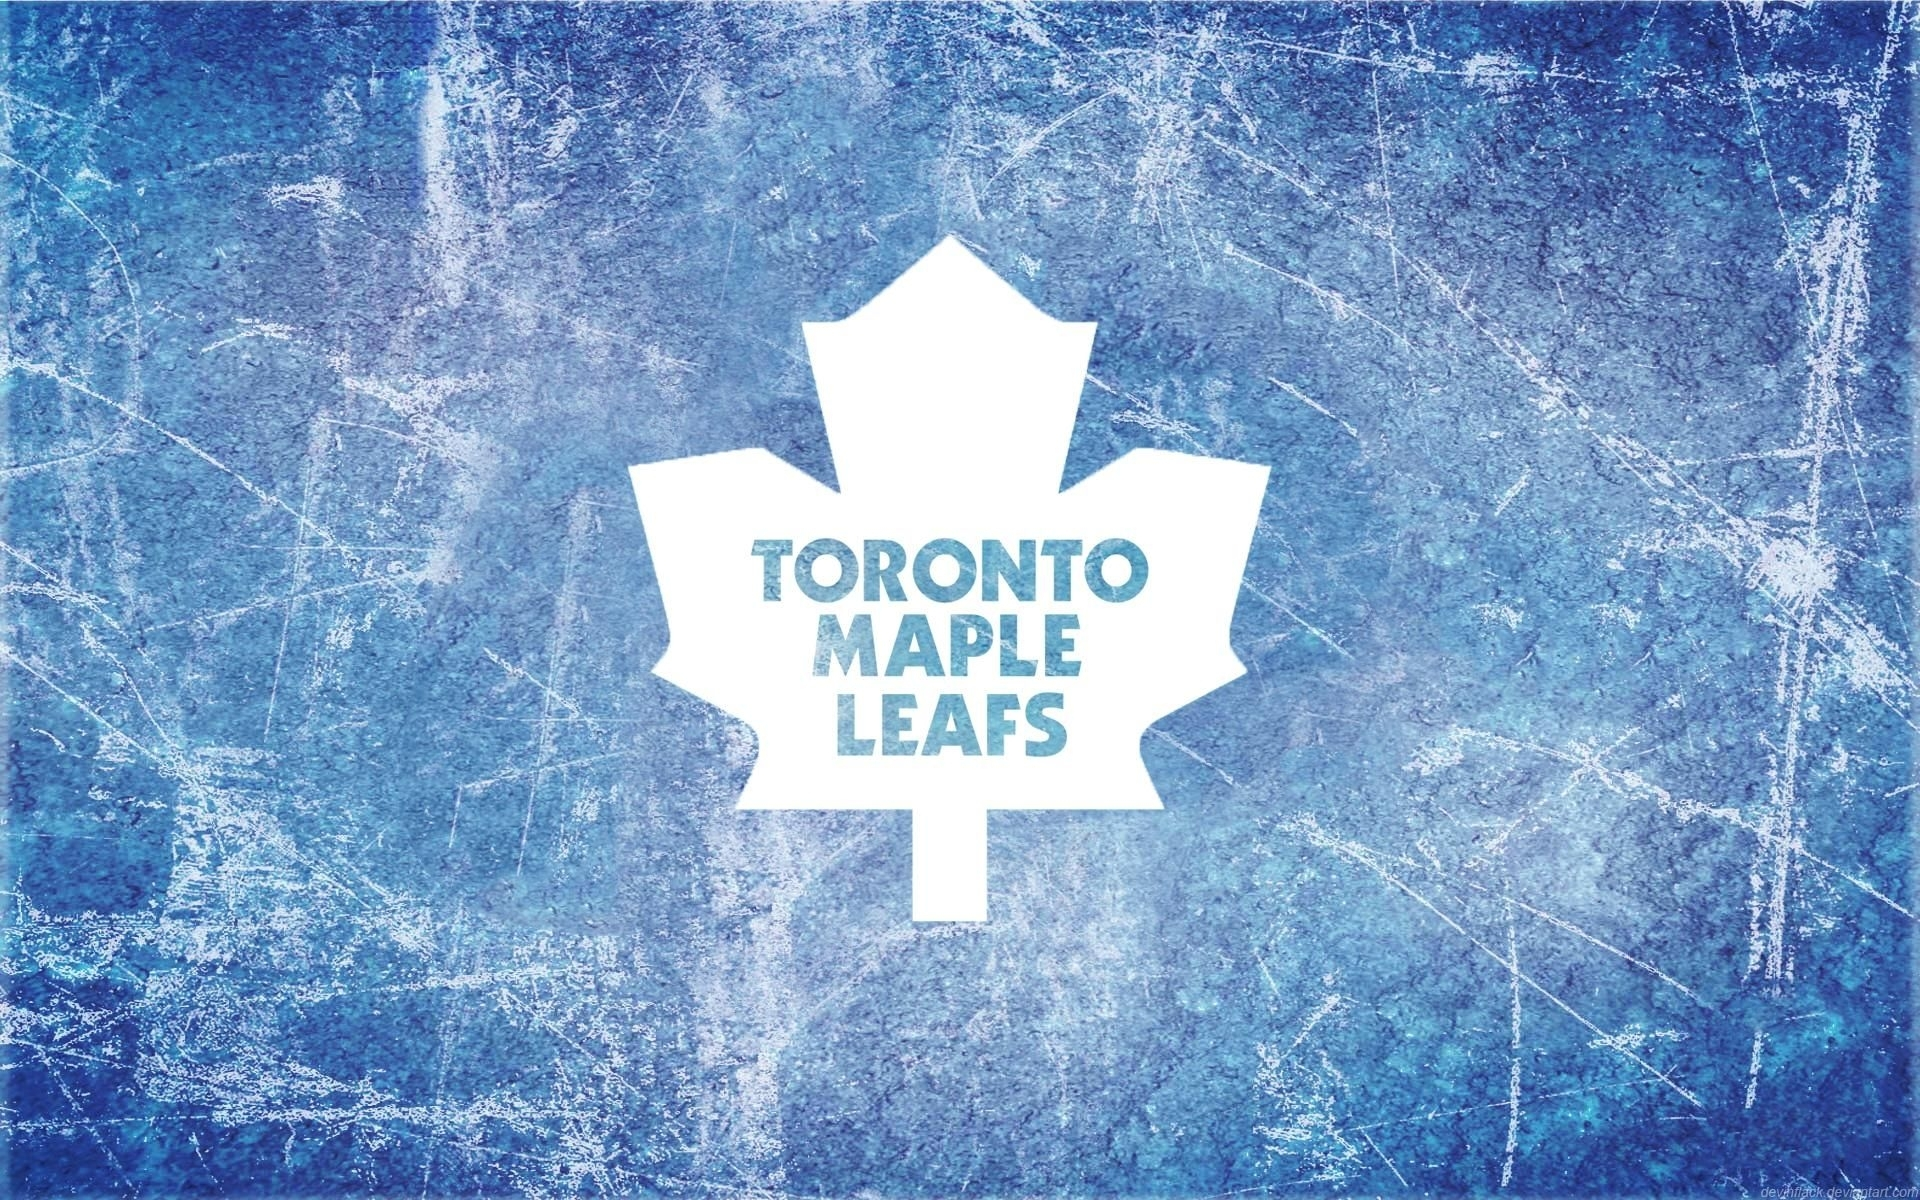 toronto maple leafs backgrounds - wallpaper cave | all wallpapers